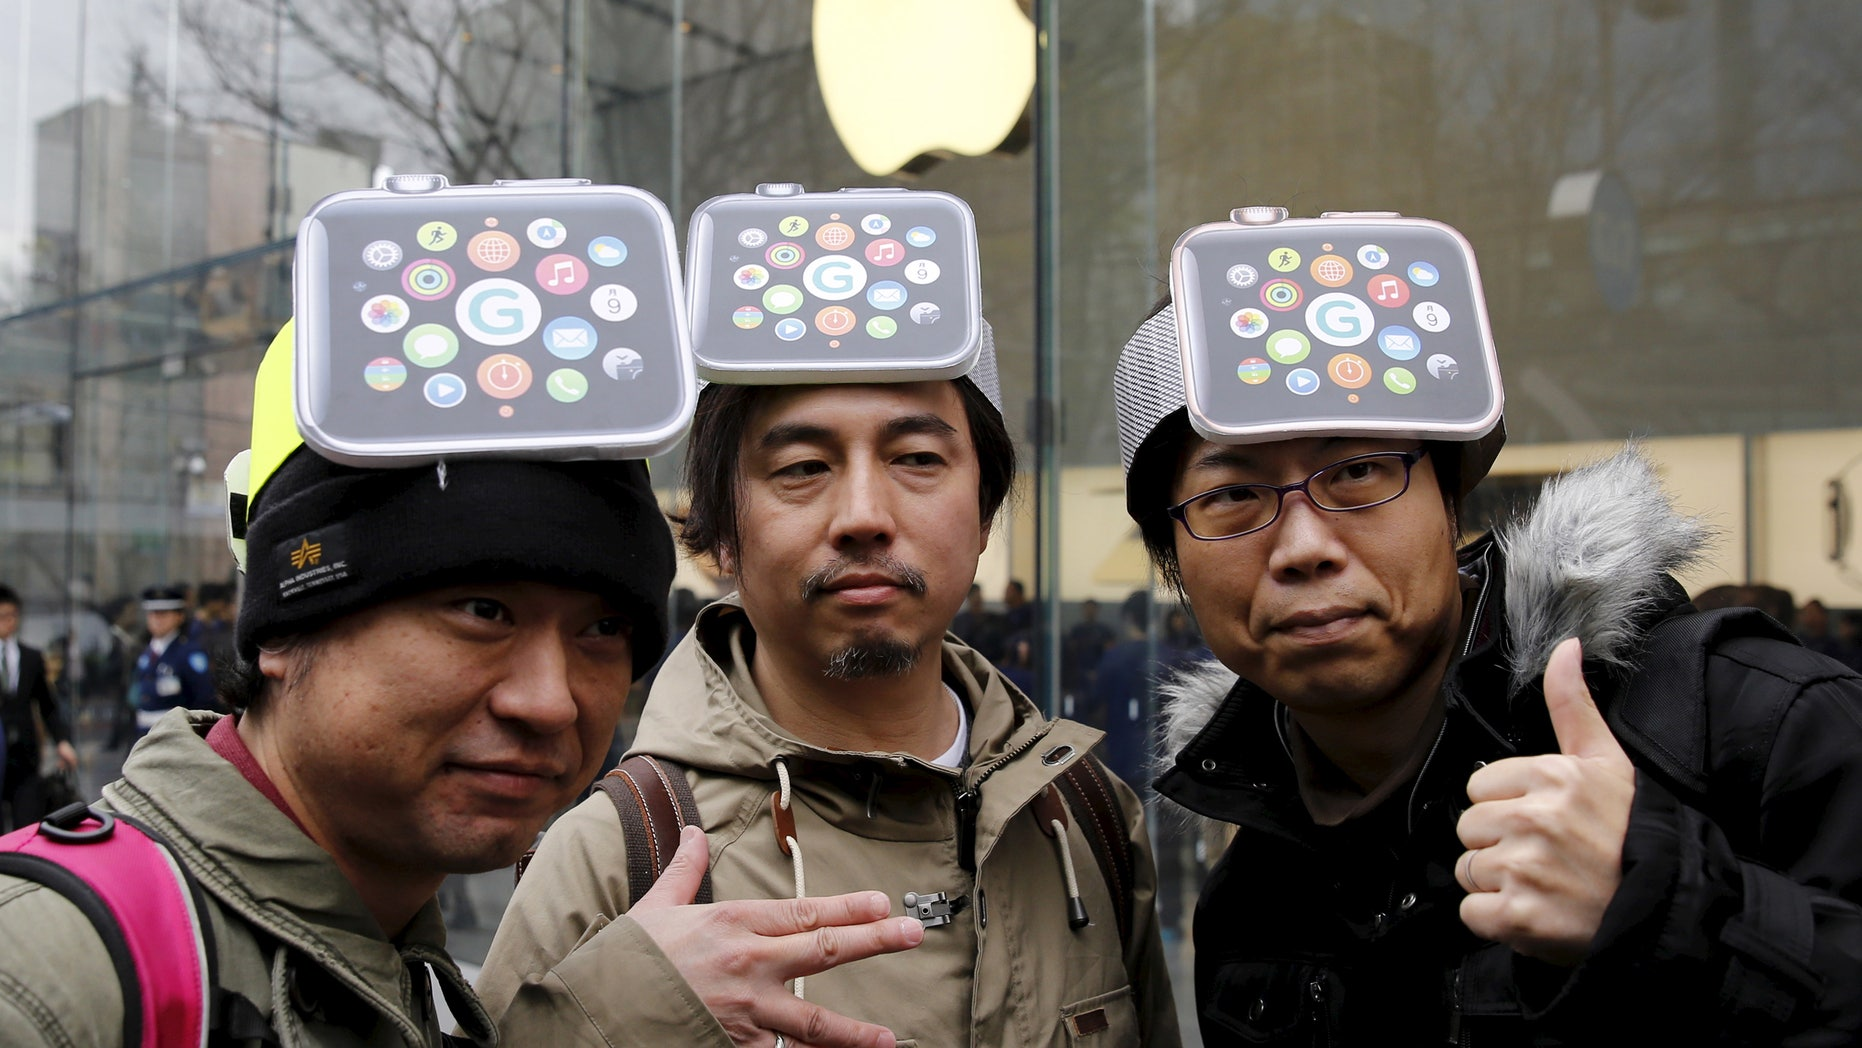 Men wearing cardboard hats depicting the Apple Watch, pose for photos before it goes on display in front of the Apple Store in Tokyo's Omotesando shopping district April 10, 2015.